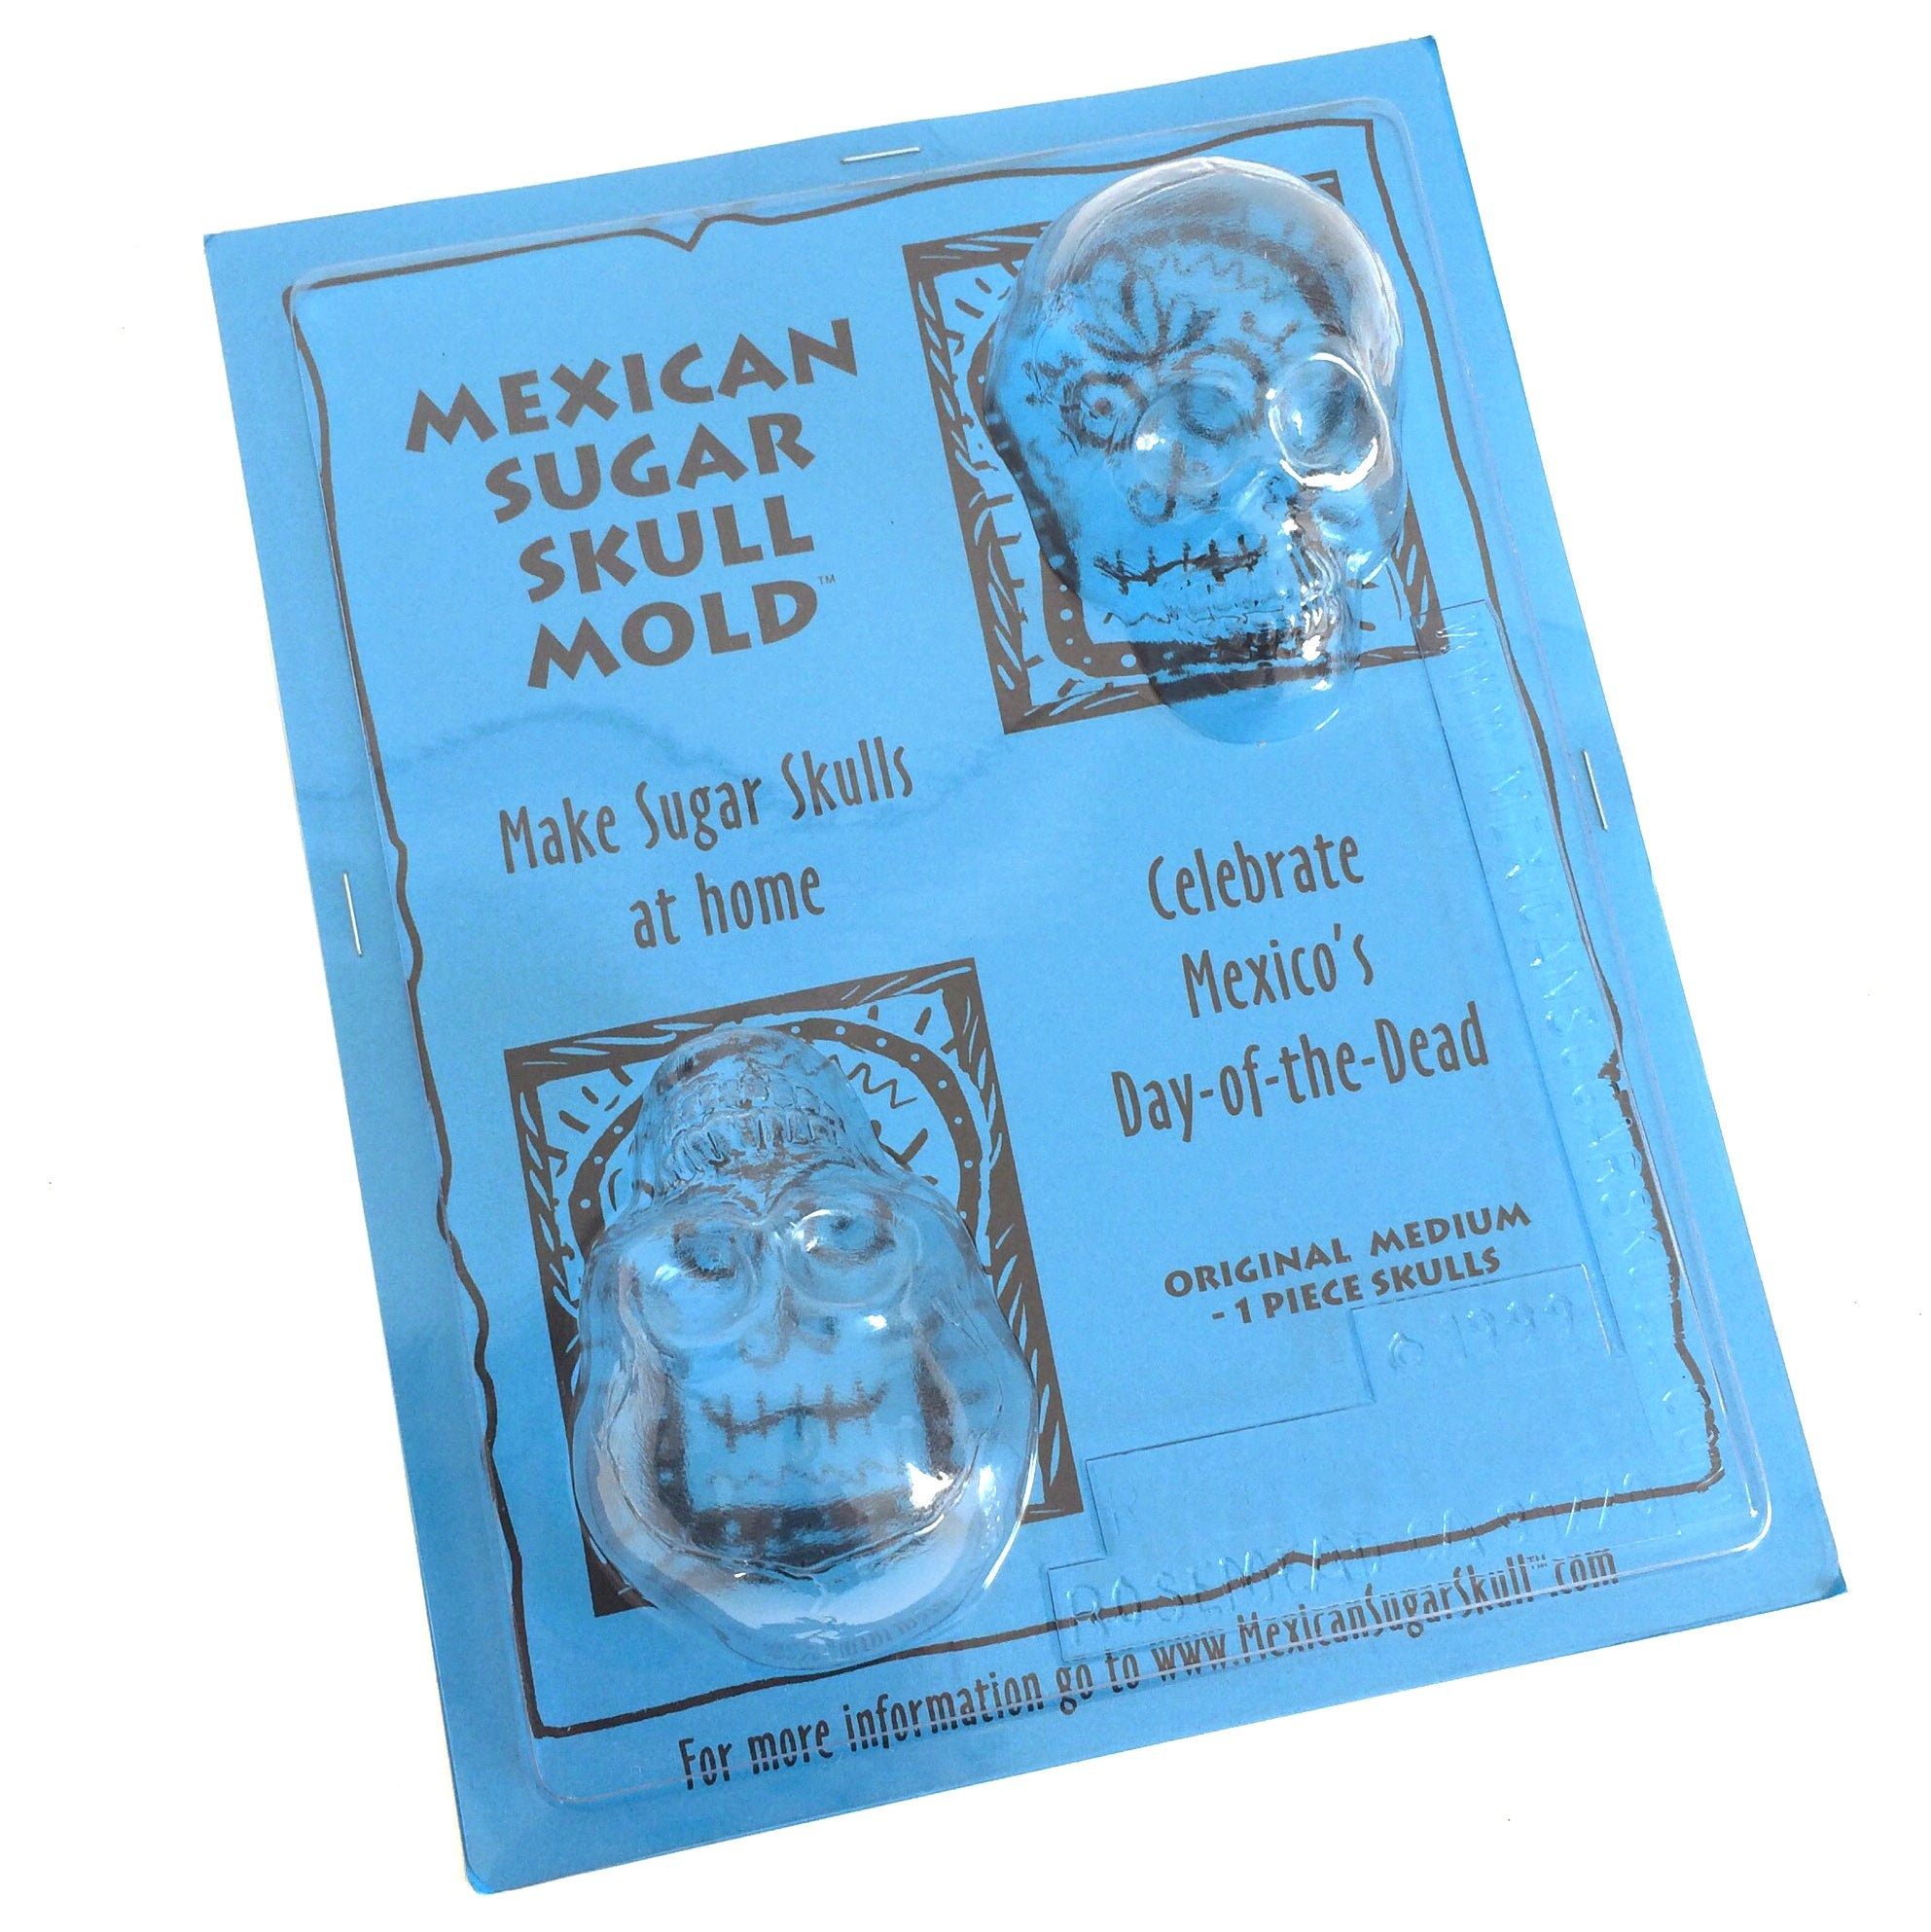 Medium Sugar Skull Mold